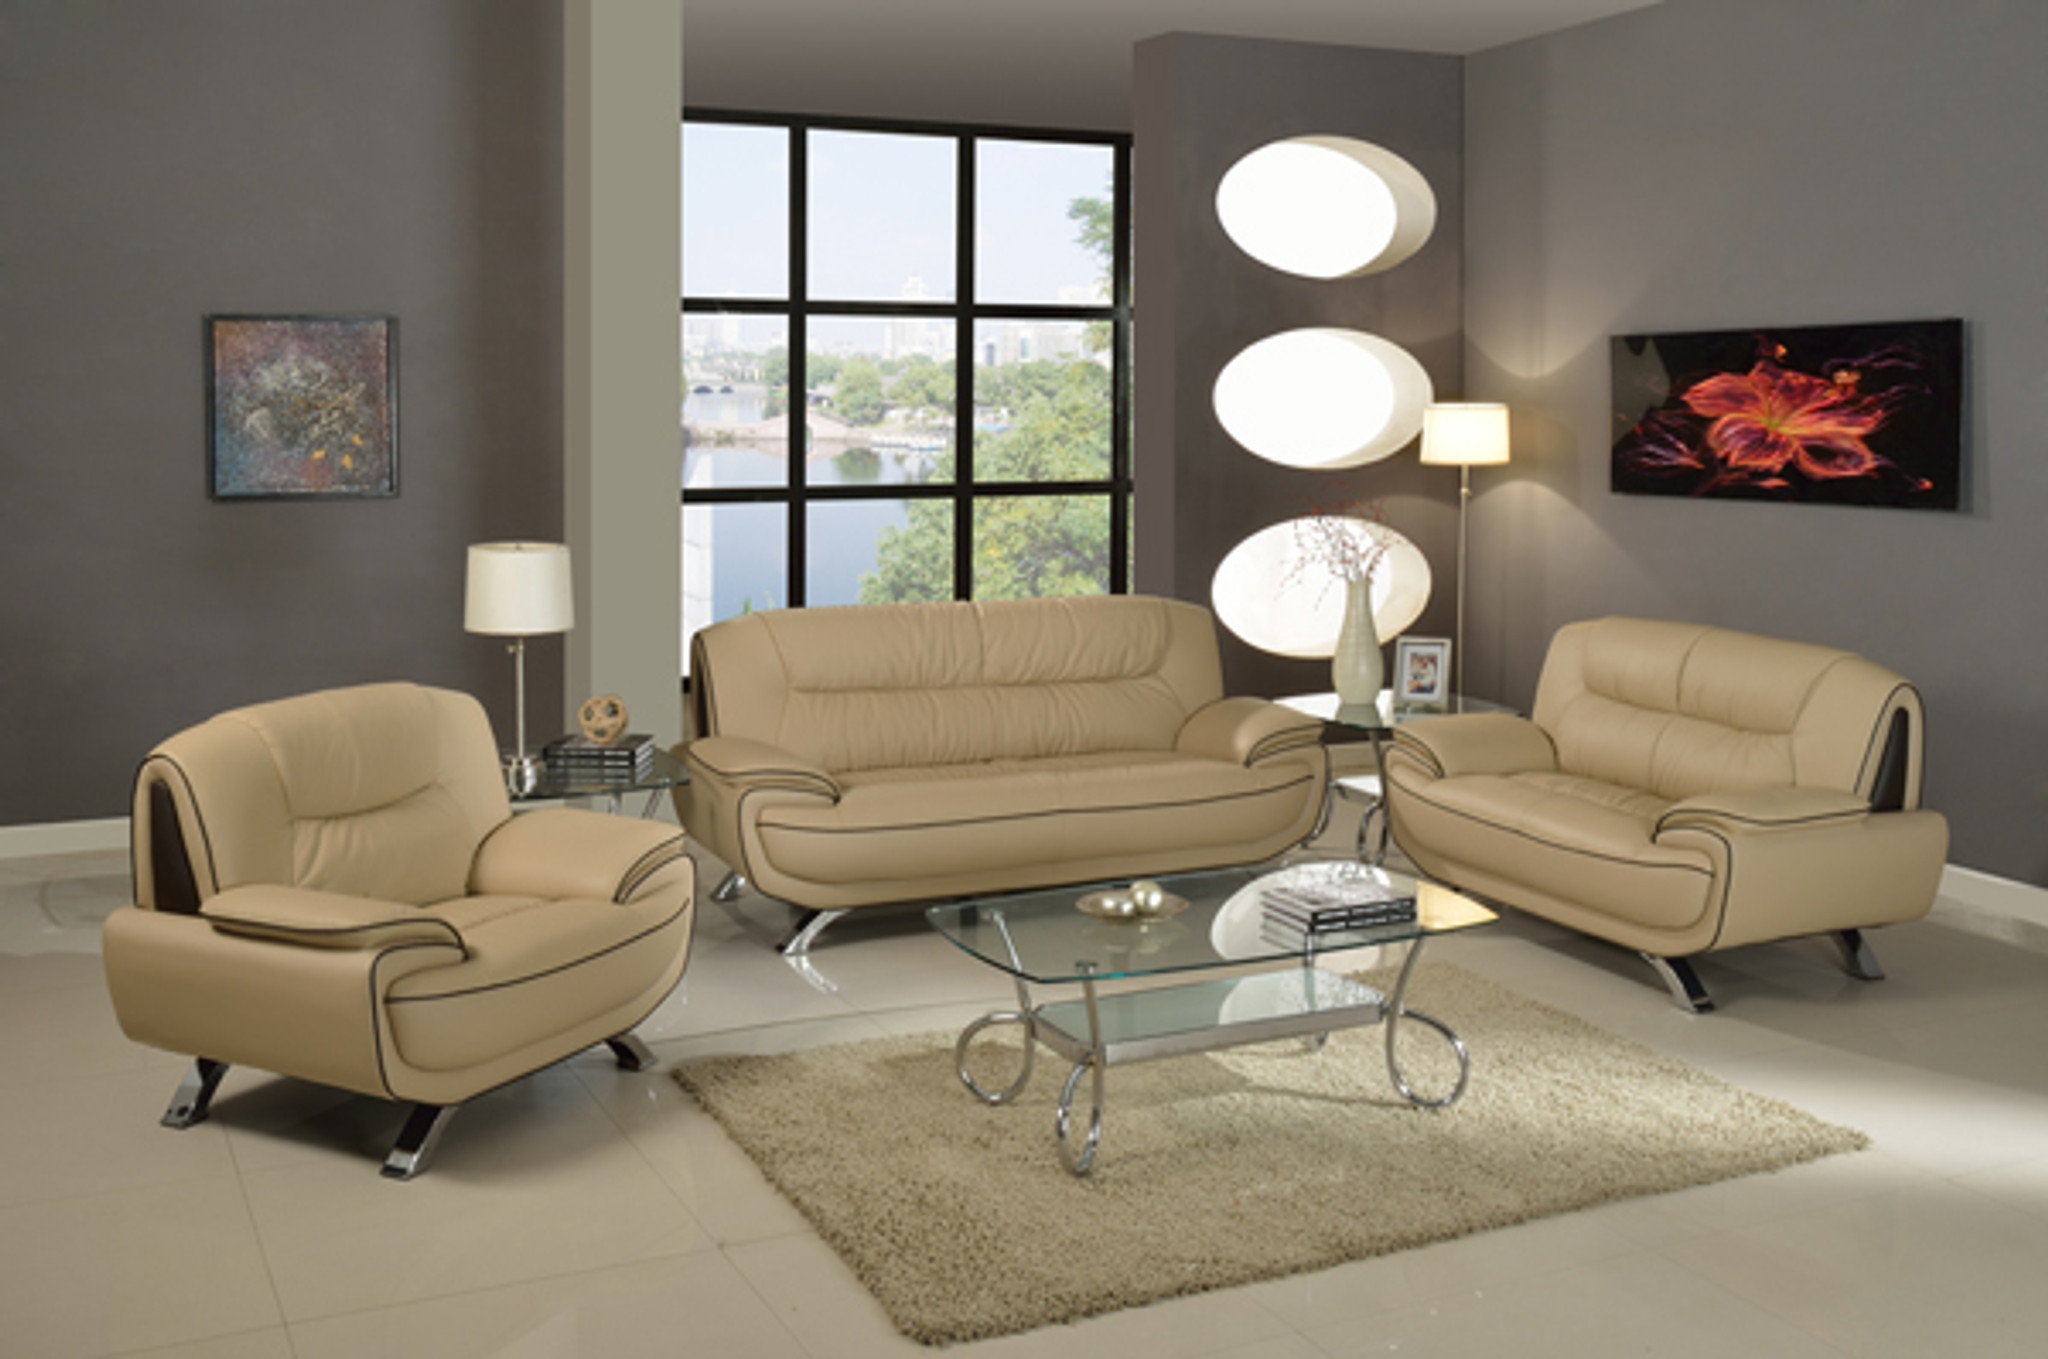 Mars Contemporary Leather Sofa And Loveseat In Cappuccino